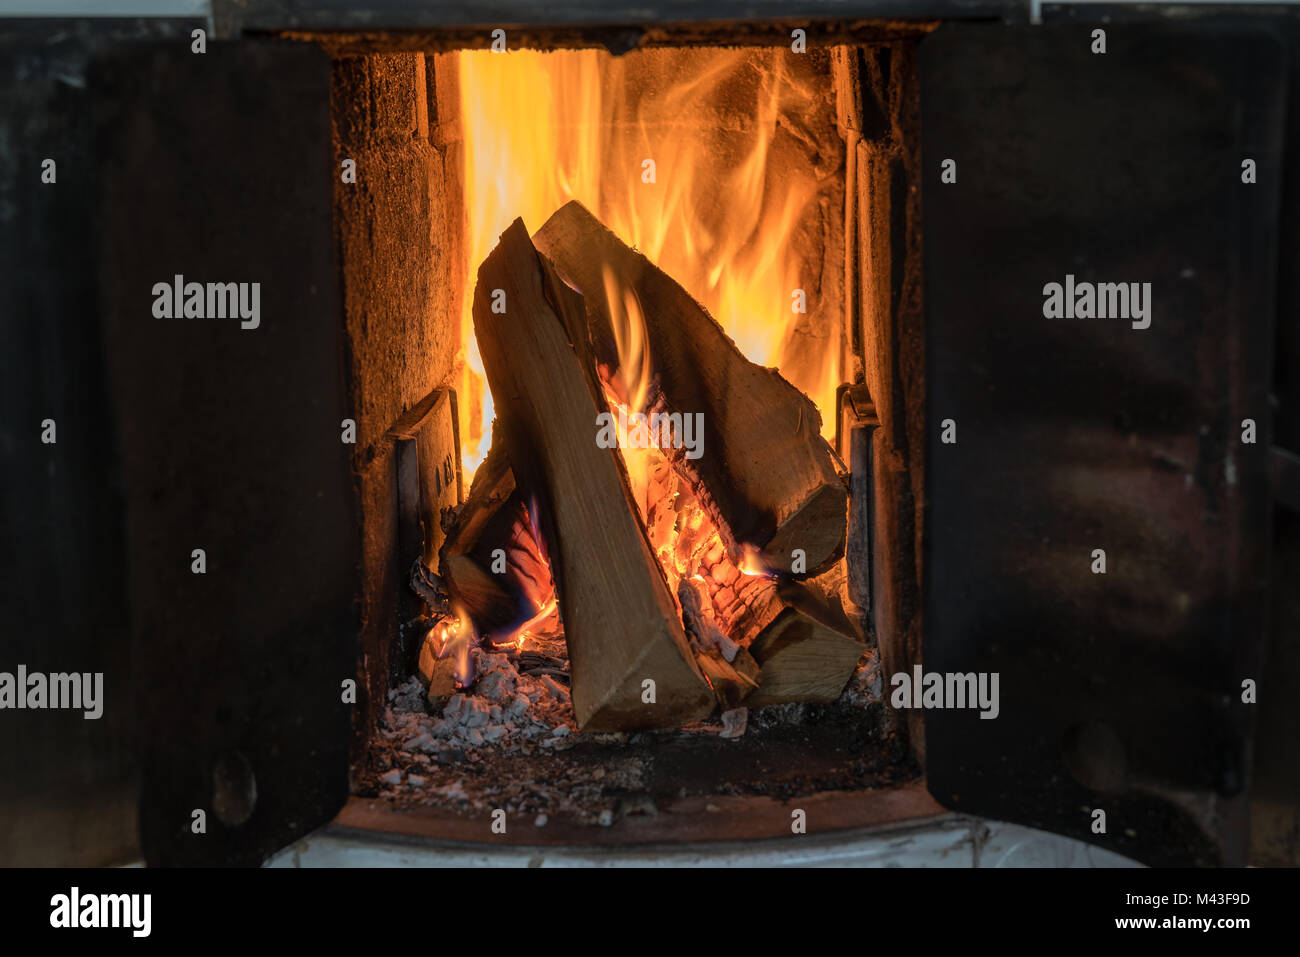 fire in a tiled stove with white tiles - Stock Image